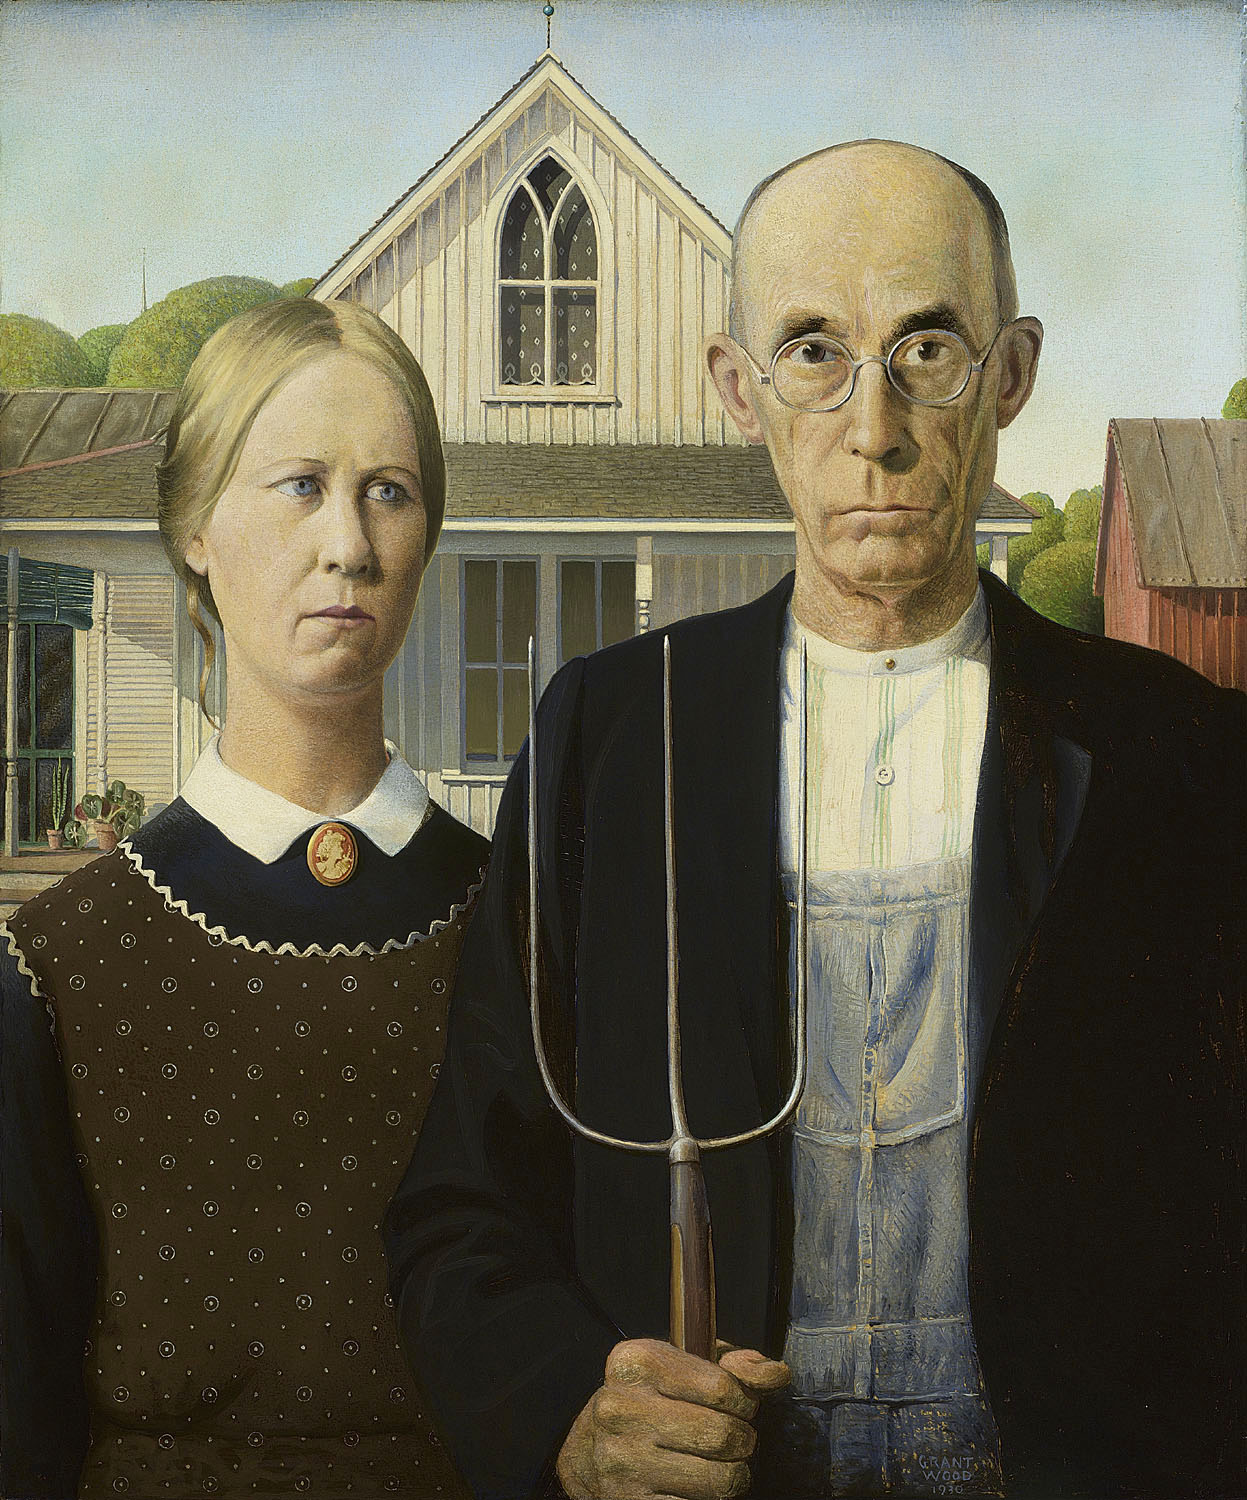 Grant Wood (1891-1942), American Gothic, 1930, oil on beaver board, 30 3/4 x 25 3/4 in. (78 x 65.3 cm), The Art Institute of Chicago, Friends of American Art Collection, 1930.934